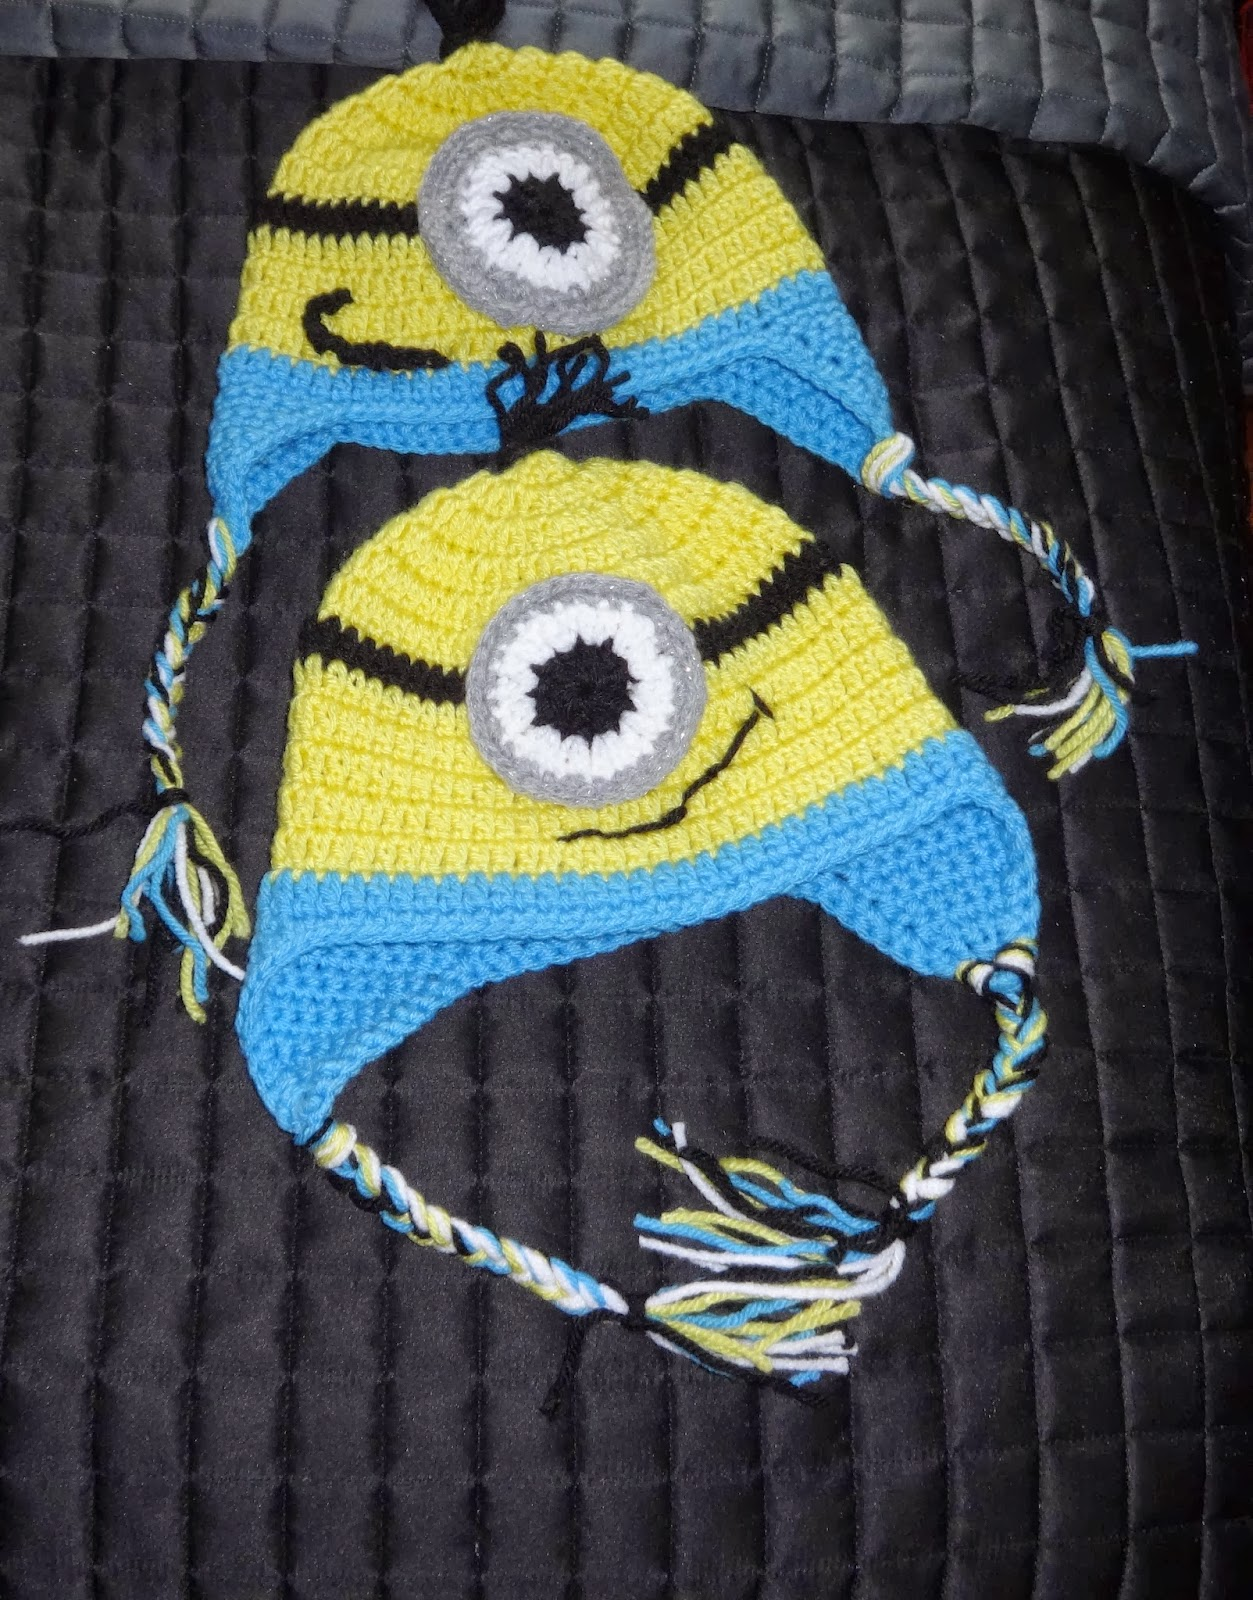 Free Crochet Pattern Minion Beanie : Its Craftini Time!: Minion Earflap Crochet Hat and Beanie ...